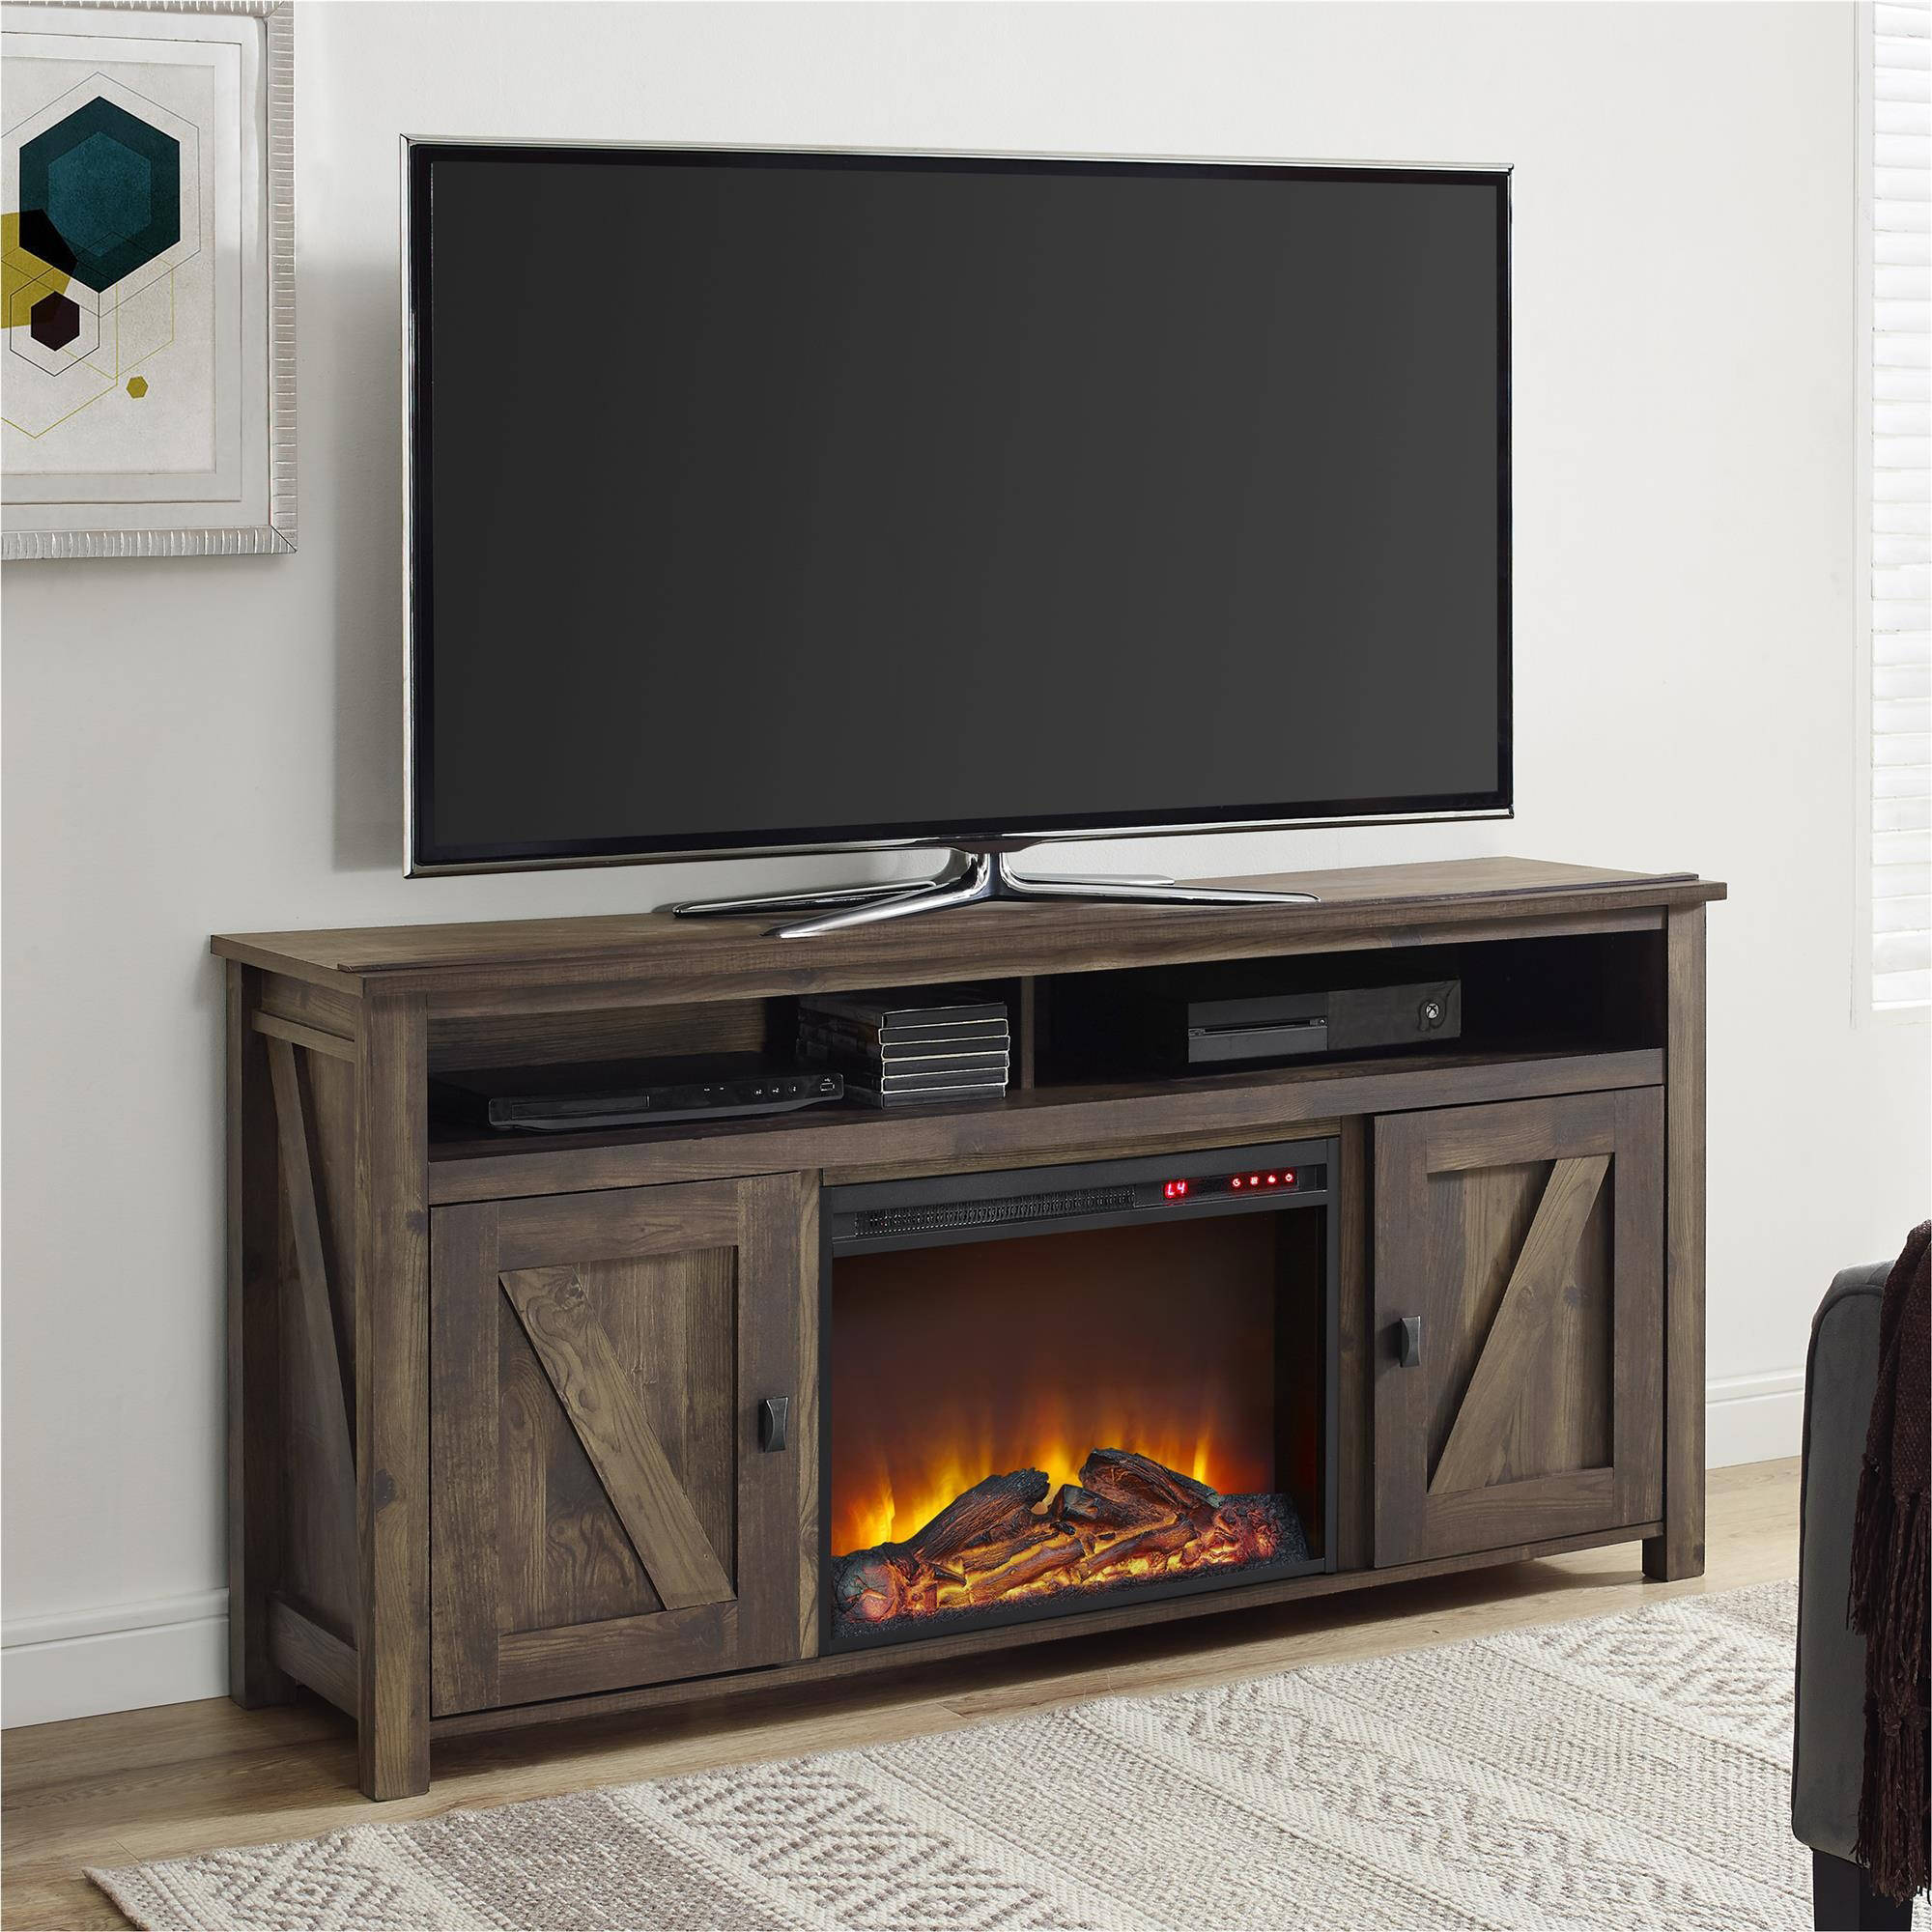 corner furnitech contemporary wenge w fireplace electric cheap in cabinet stand perspective tv